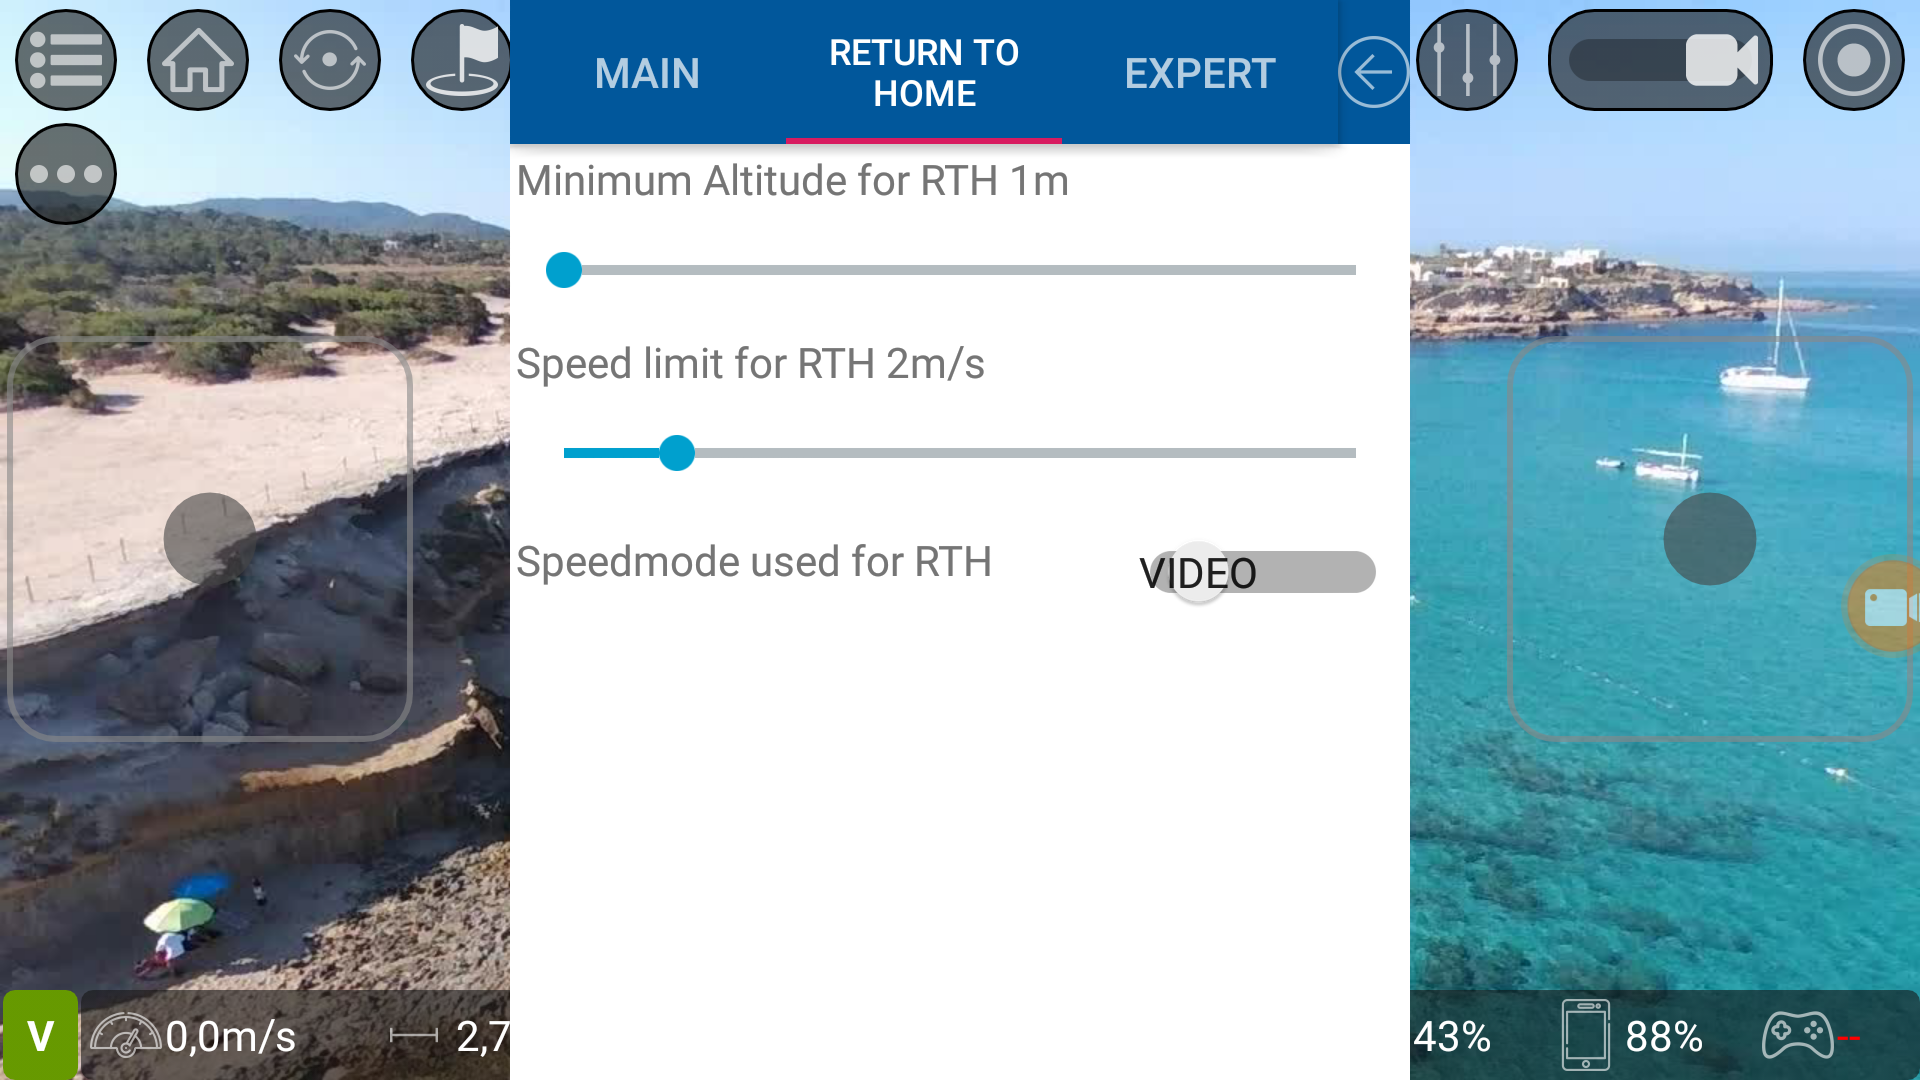 TelloFPV for Android - Autopilots, Home return and more for your Tello!